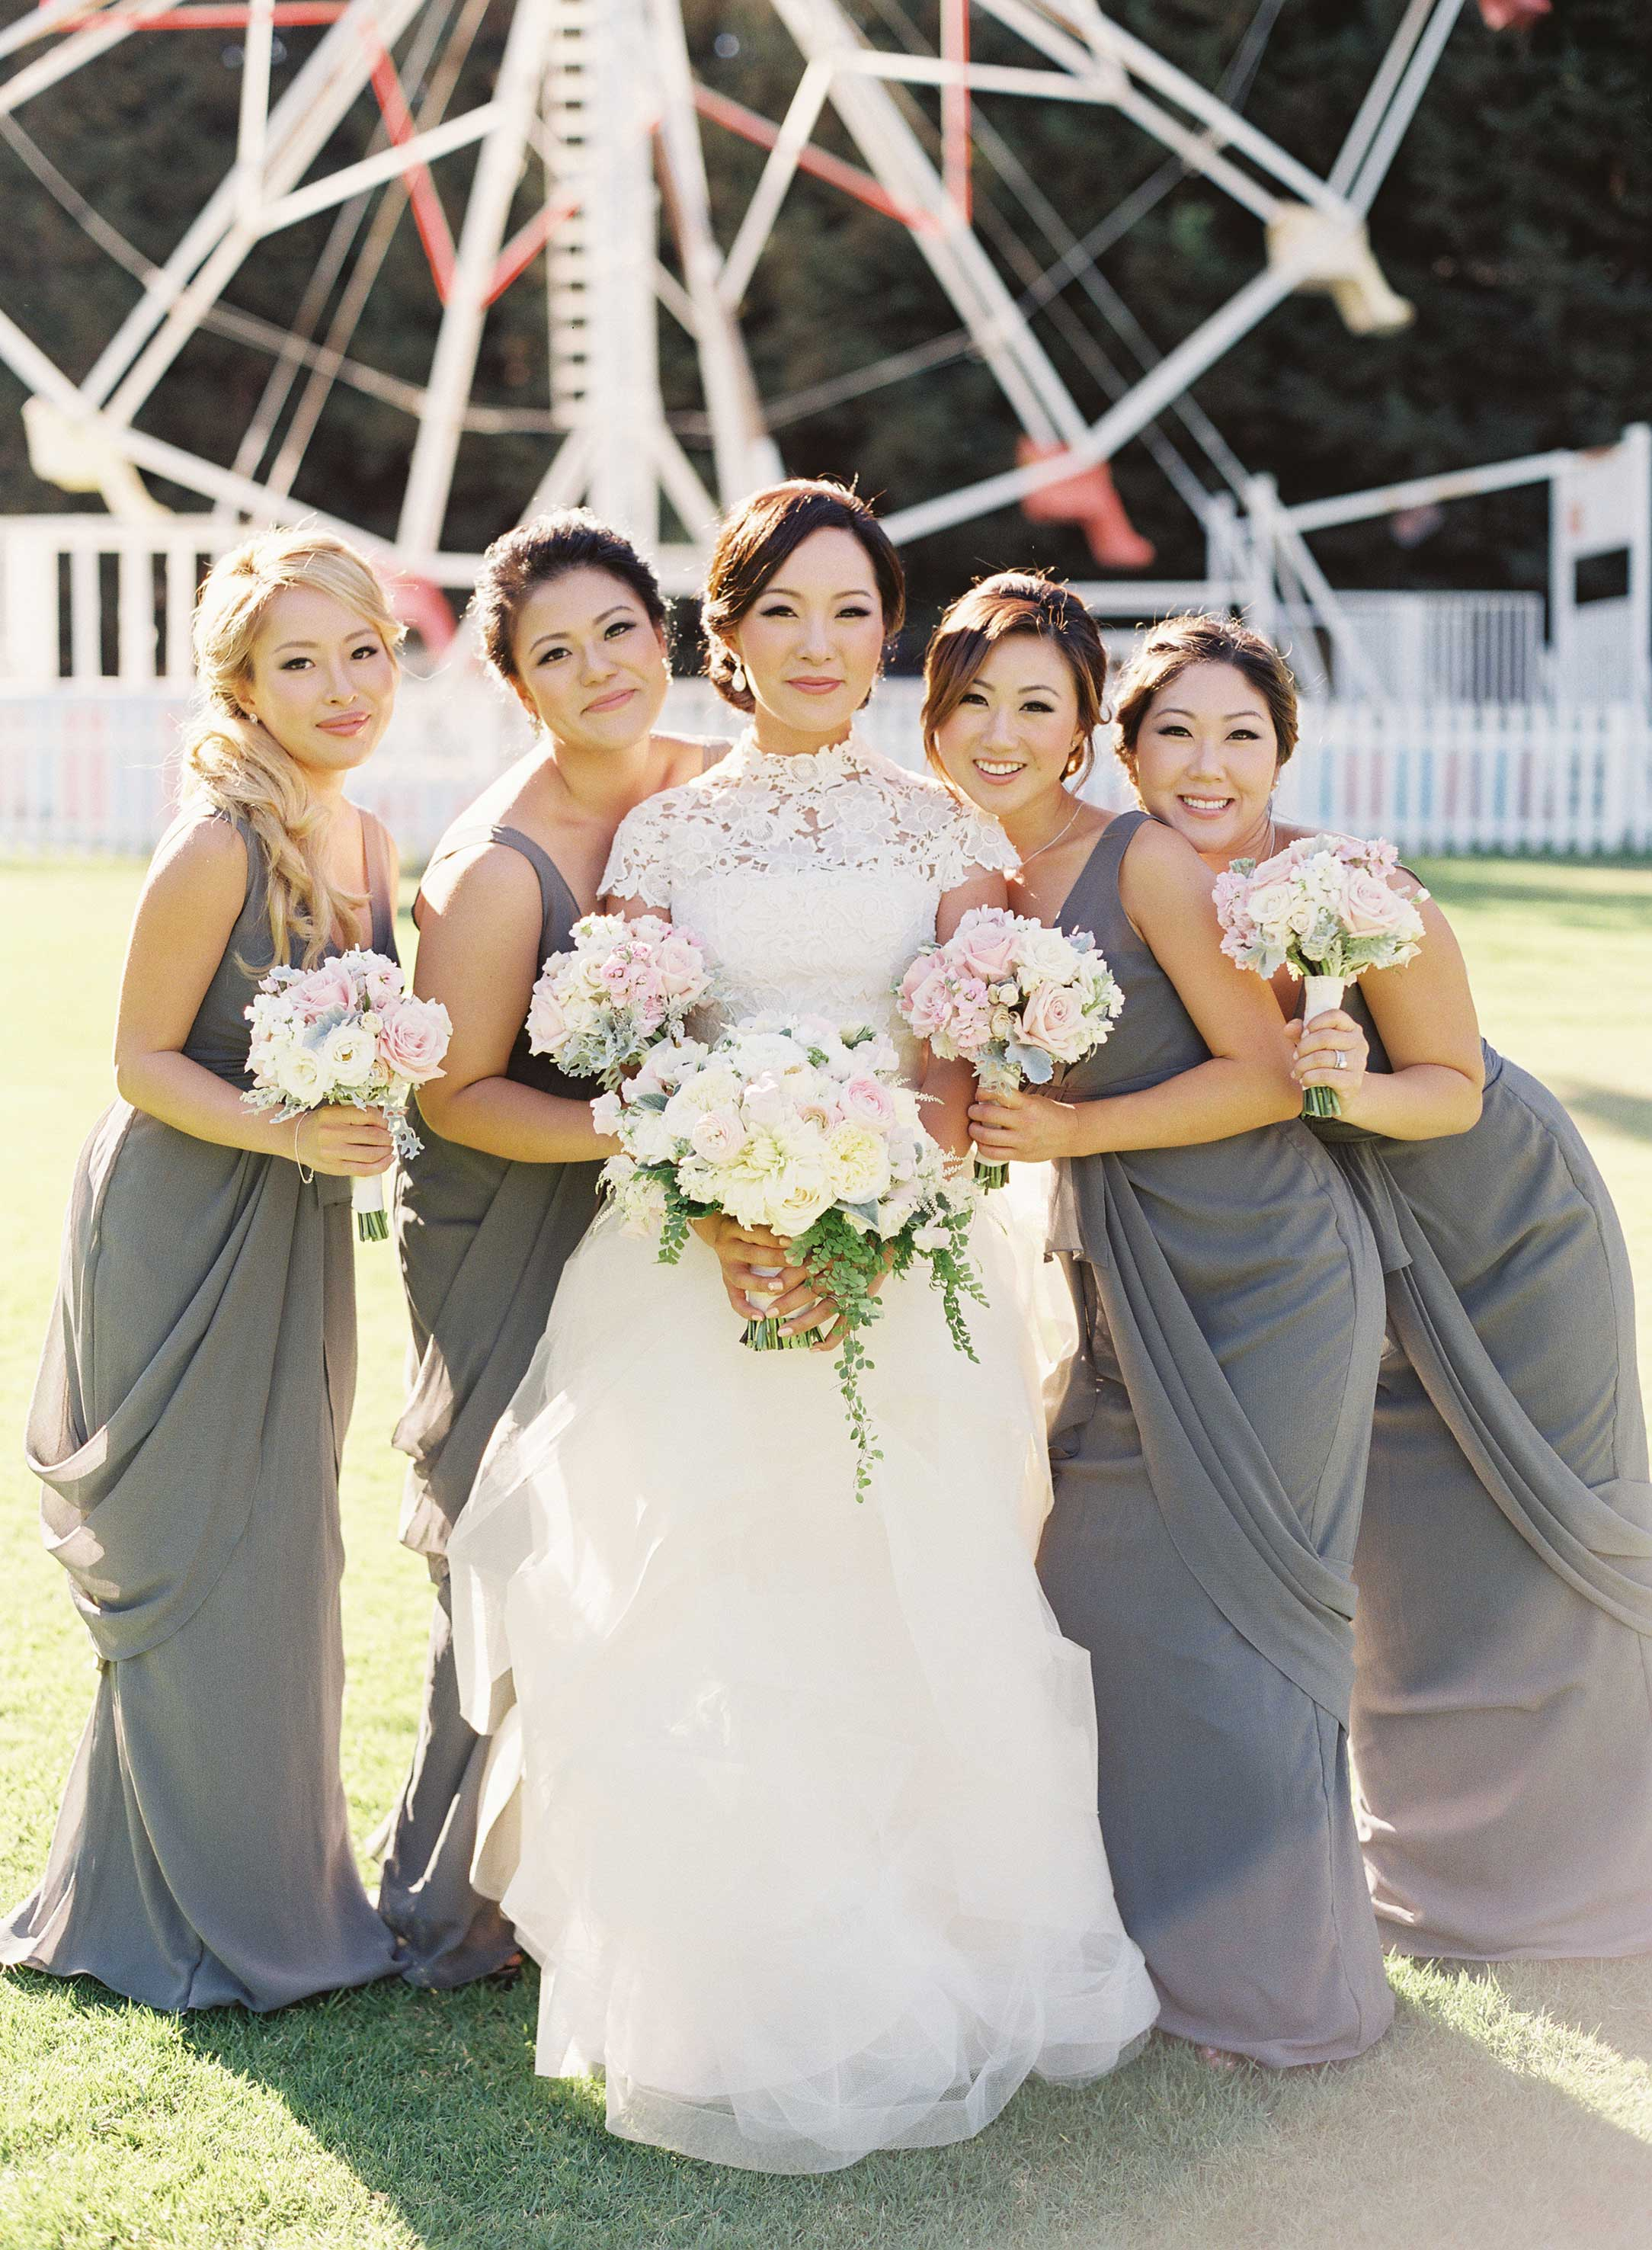 Wedding Color Palette: 16 Grey Wedding Décor Ideas - Inside Weddings